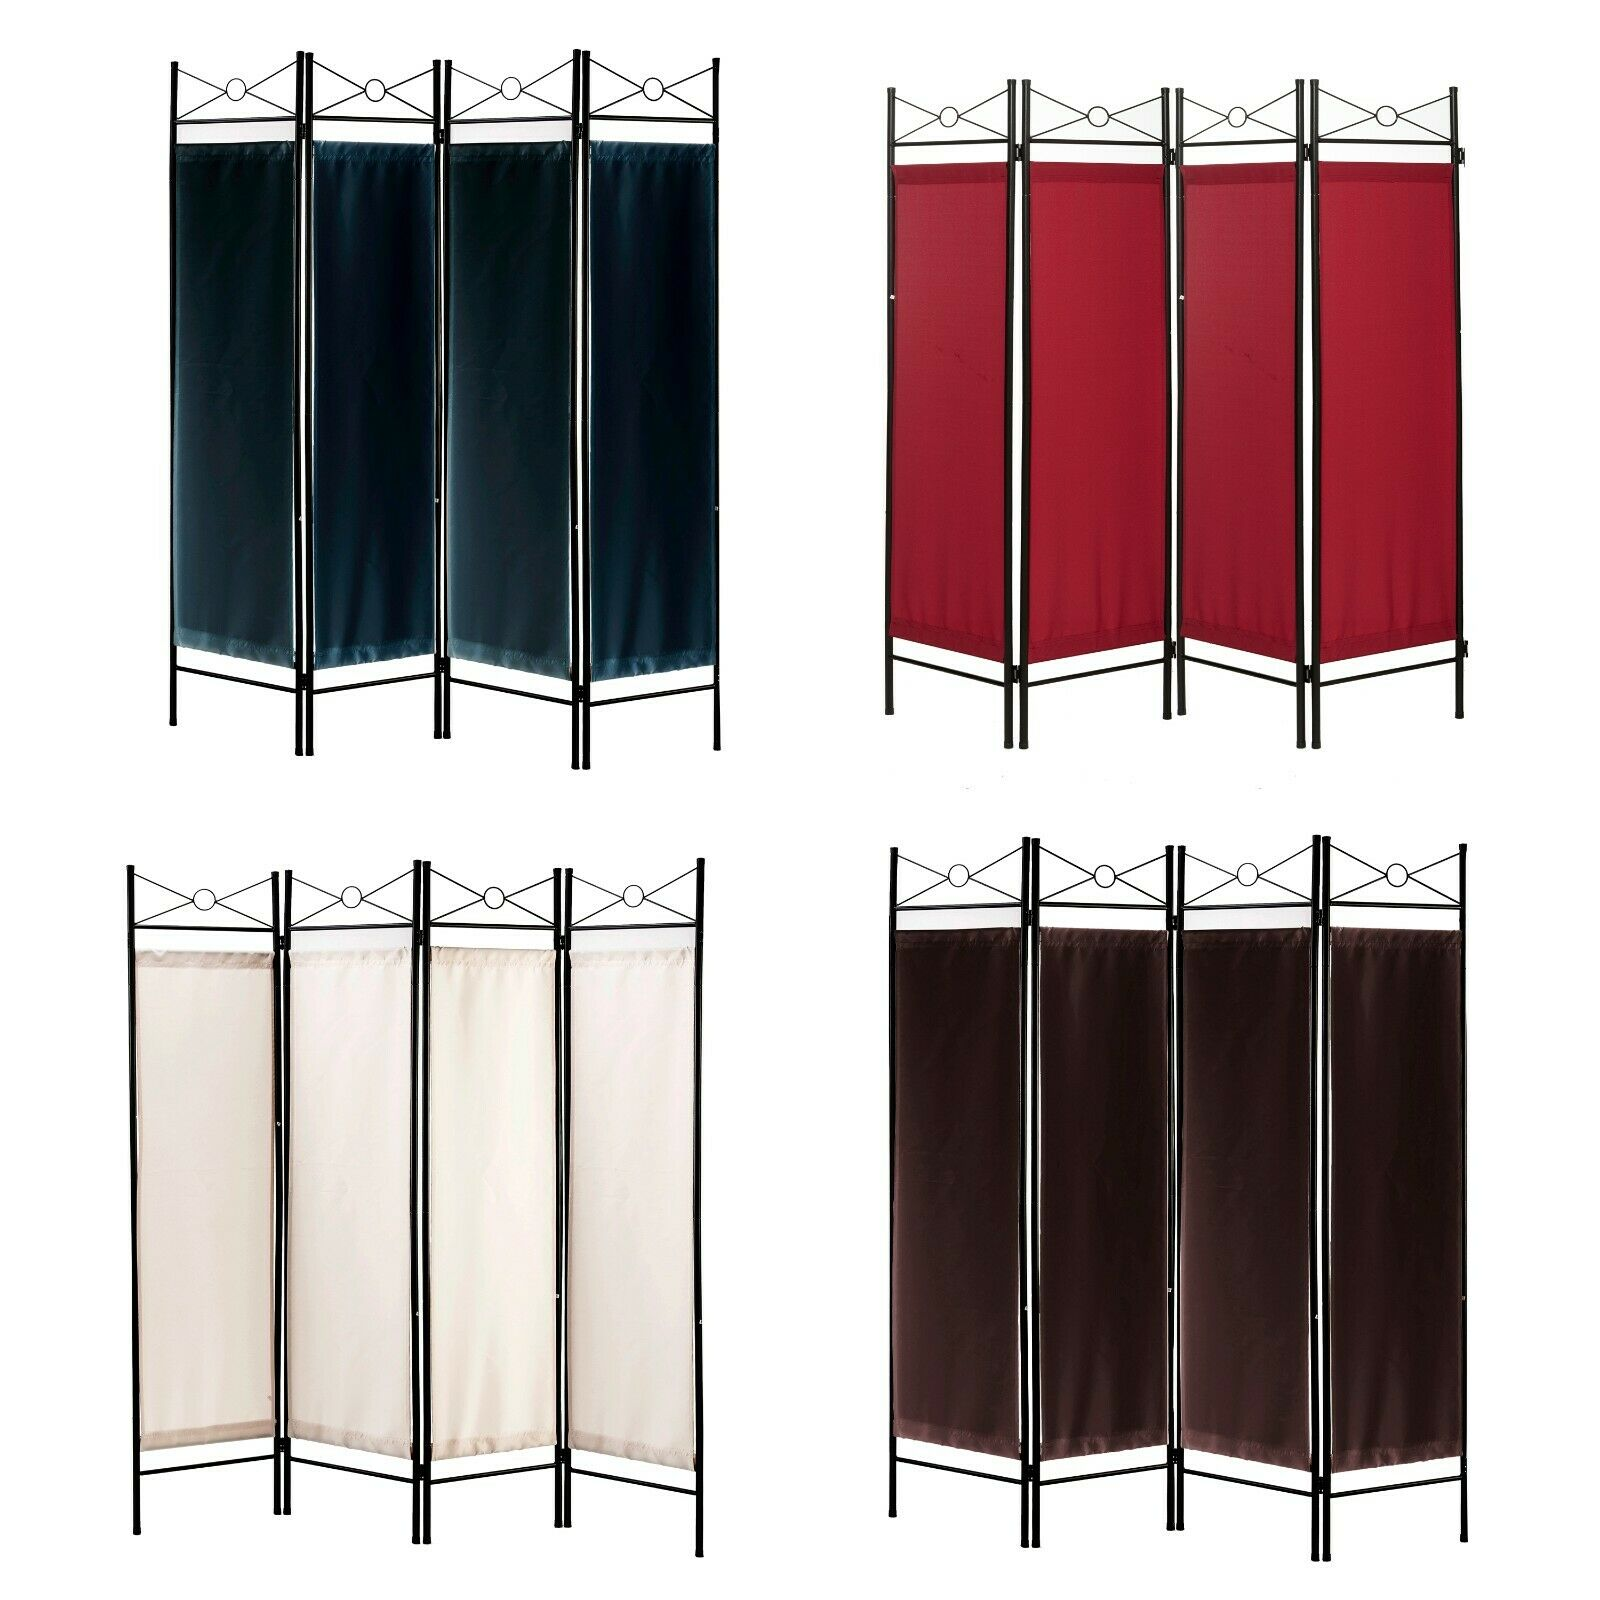 4 Panel Black Color Metal And Woven Fabric Room Divider With Two Way Hinges By For Sale Online Ebay